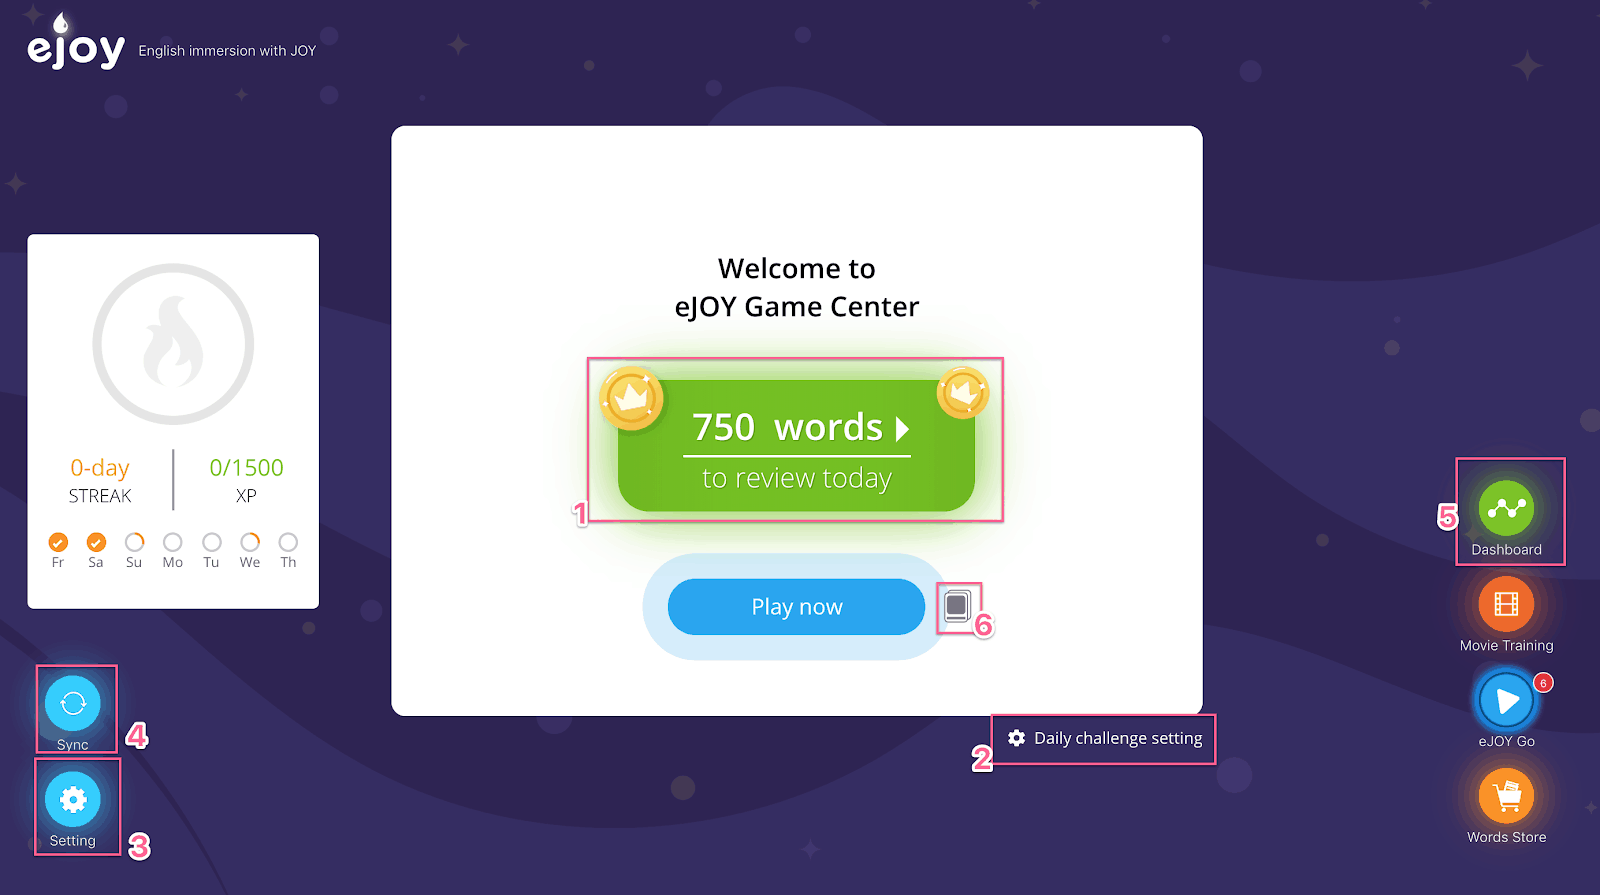 Game Center on eJOY eXtension